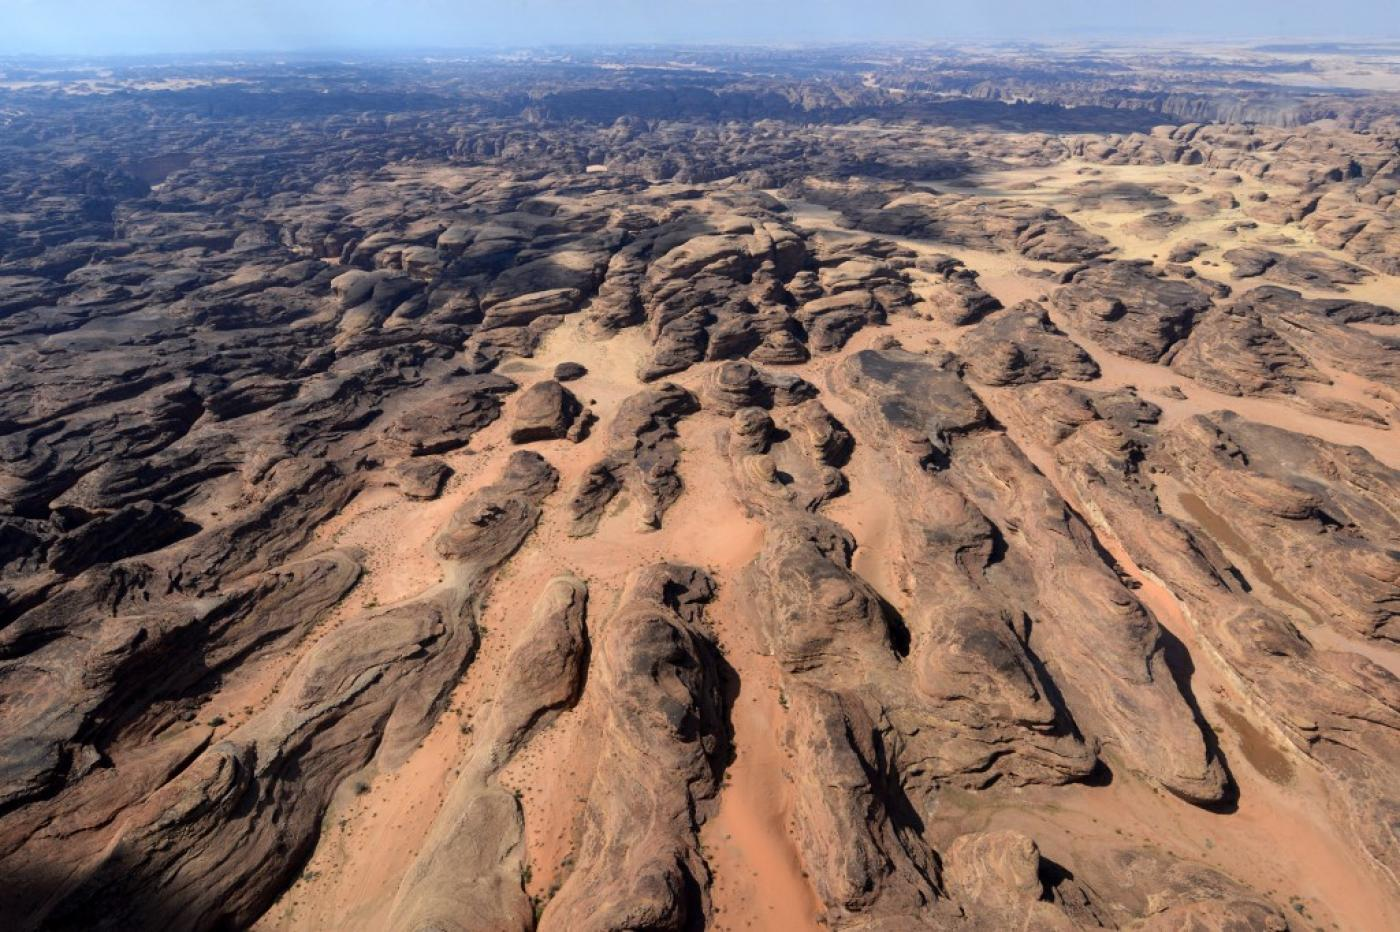 One official said that the facility is located in the vicinity of al-Ula, a small city in the northwest of Saudi Arabia.